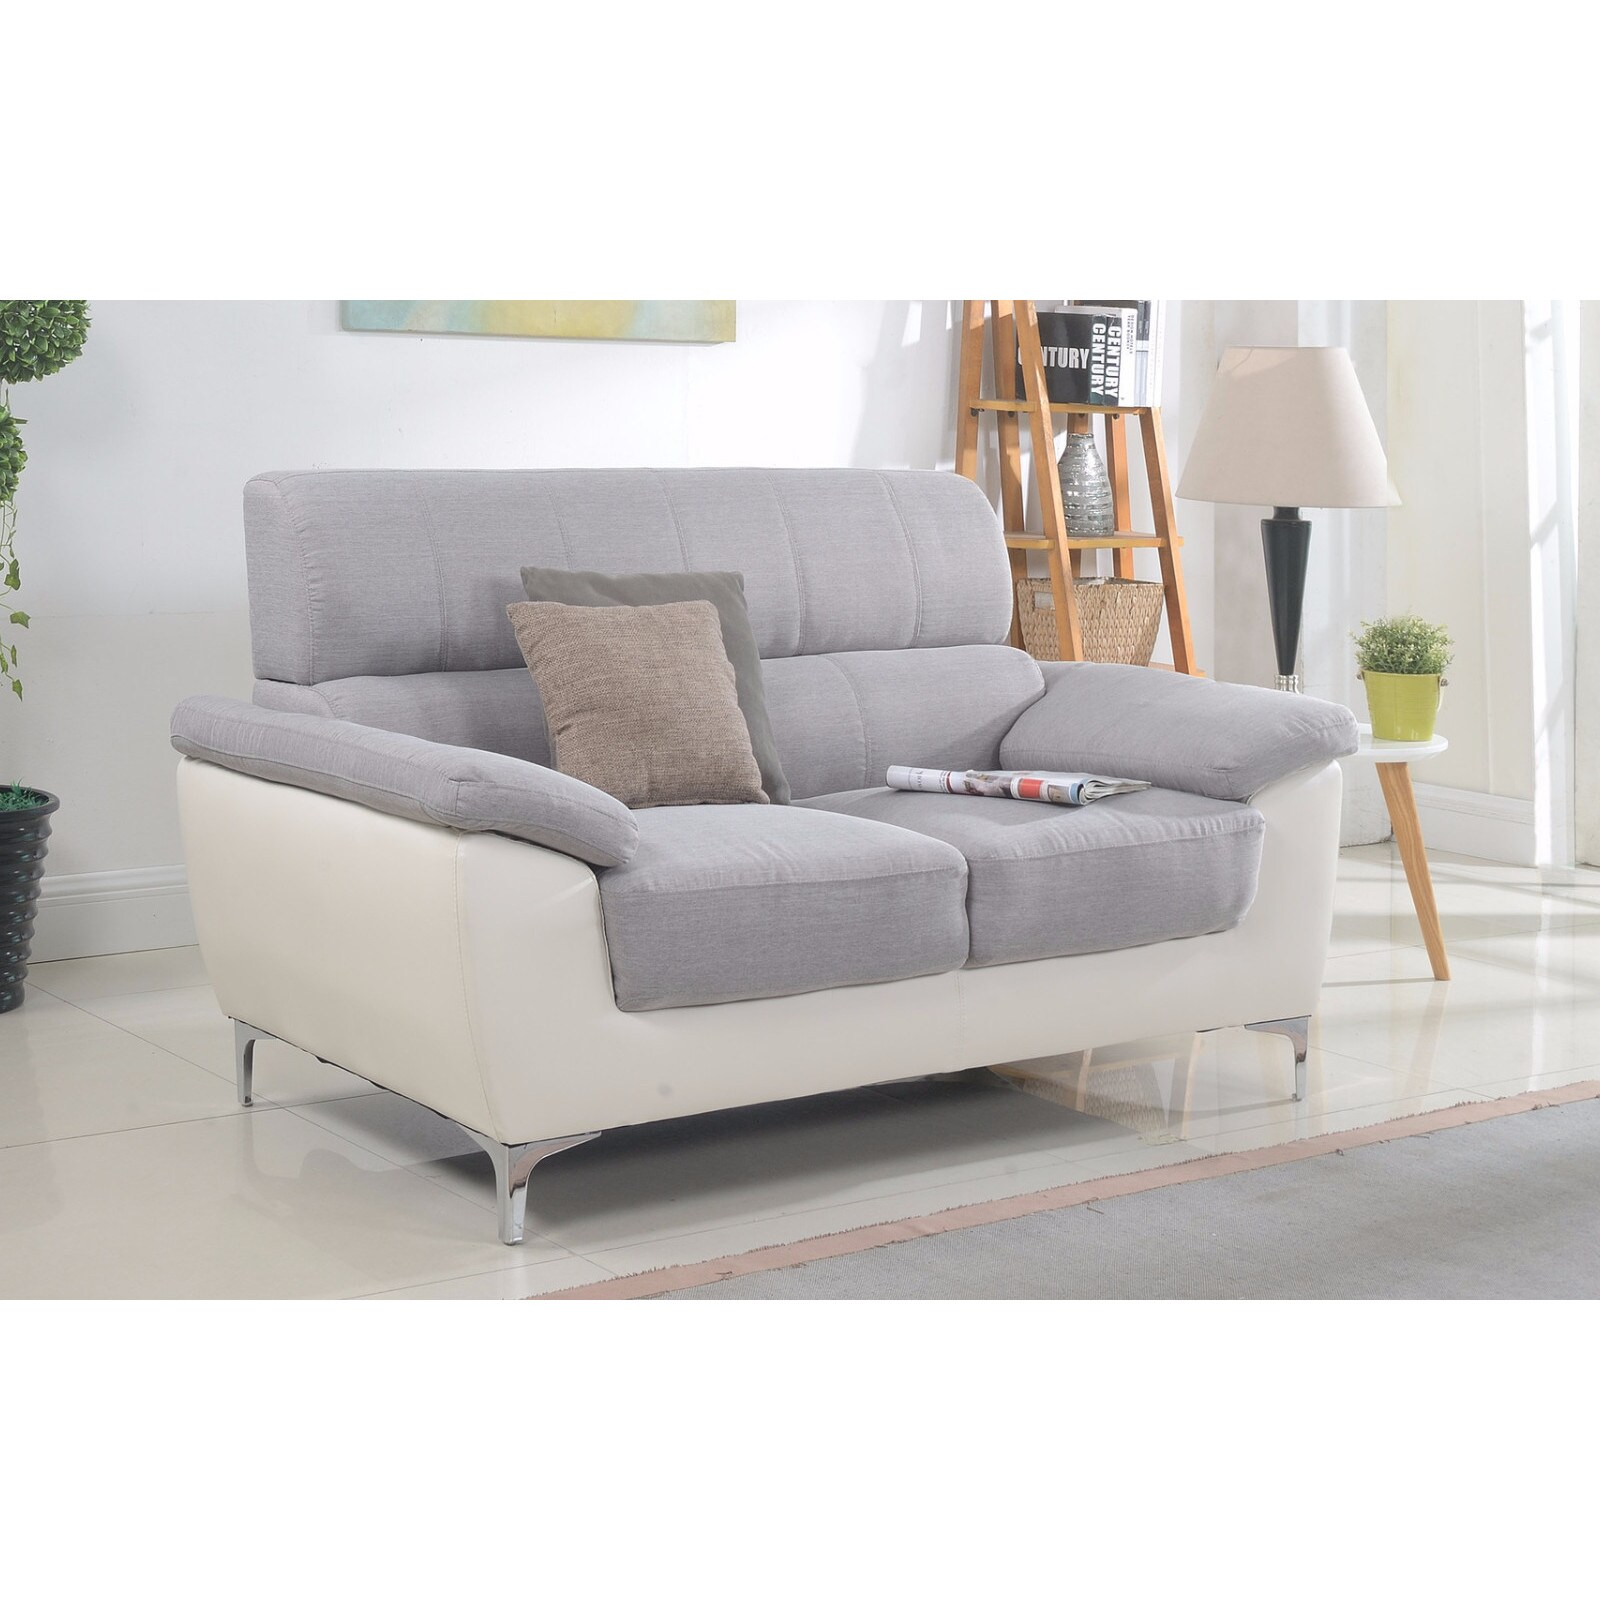 Shop Modern Two Tone Fabric and Bonded Leather Living Room Loveseat ...